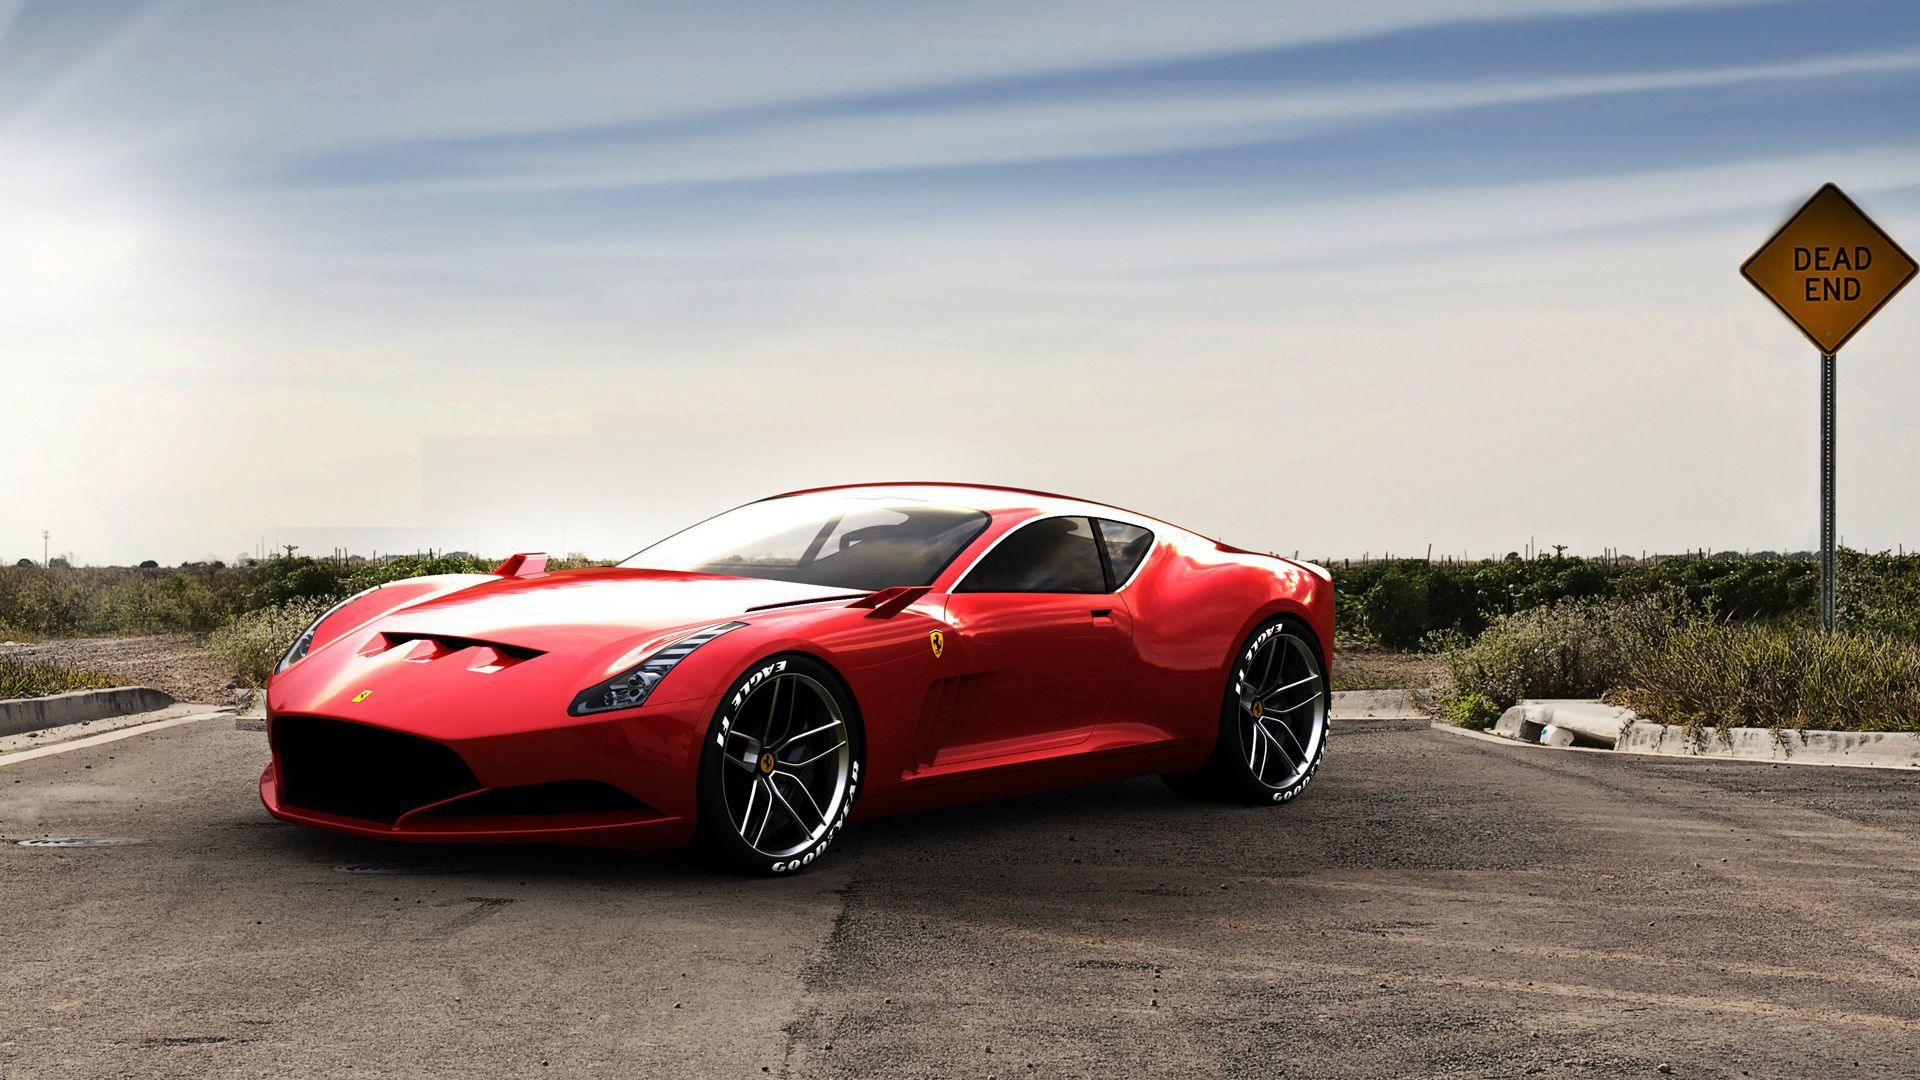 Sports Car HD Wallpapers   Top Sports Car HD Backgrounds 1920x1080